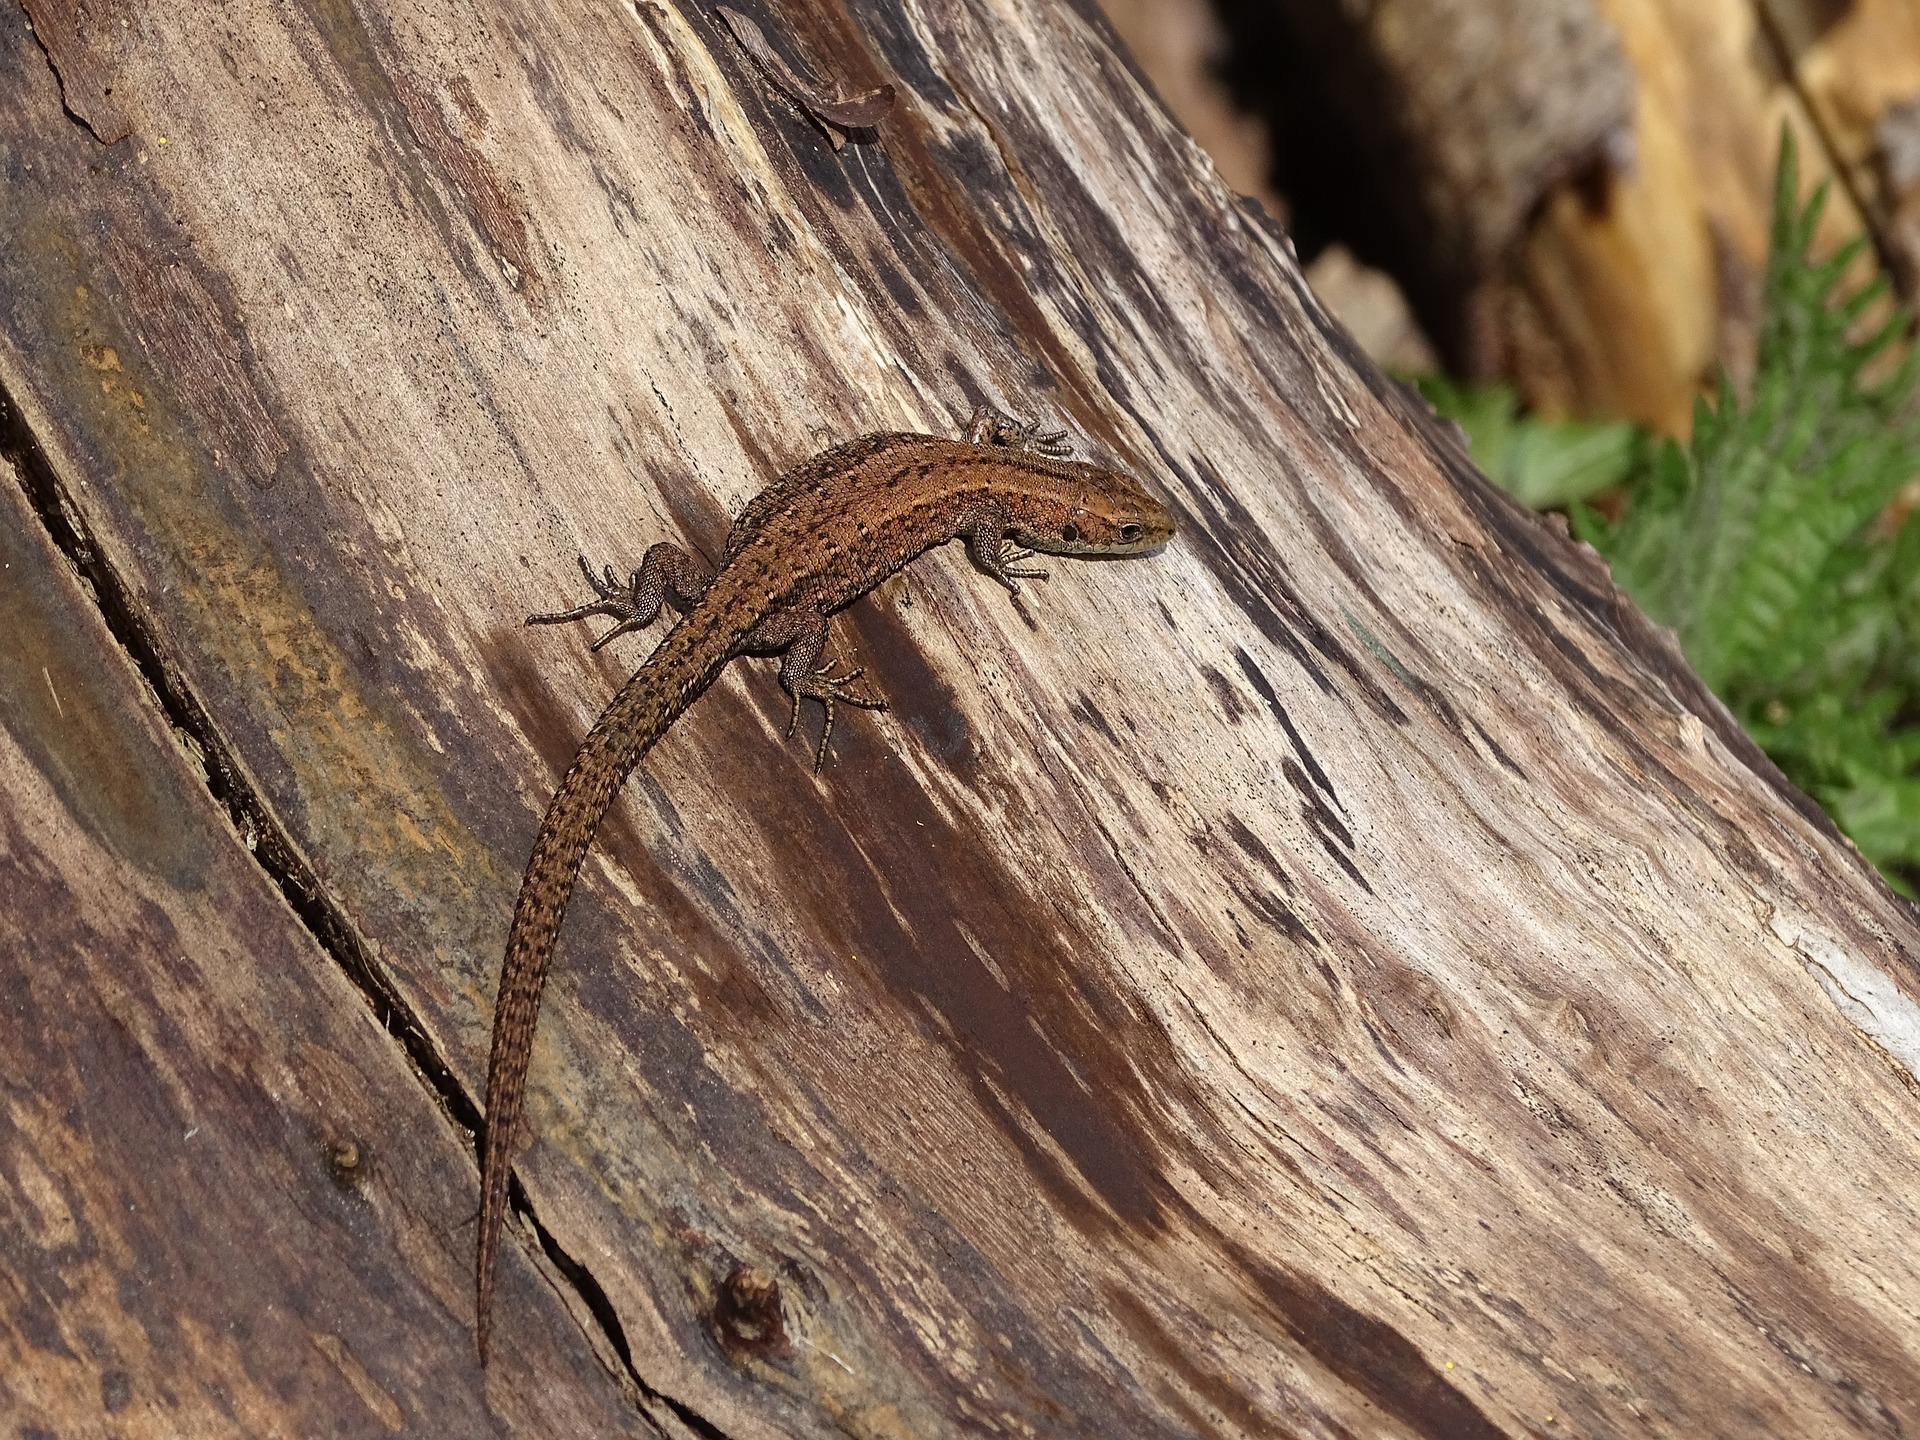 common-lizard-2033818_1920